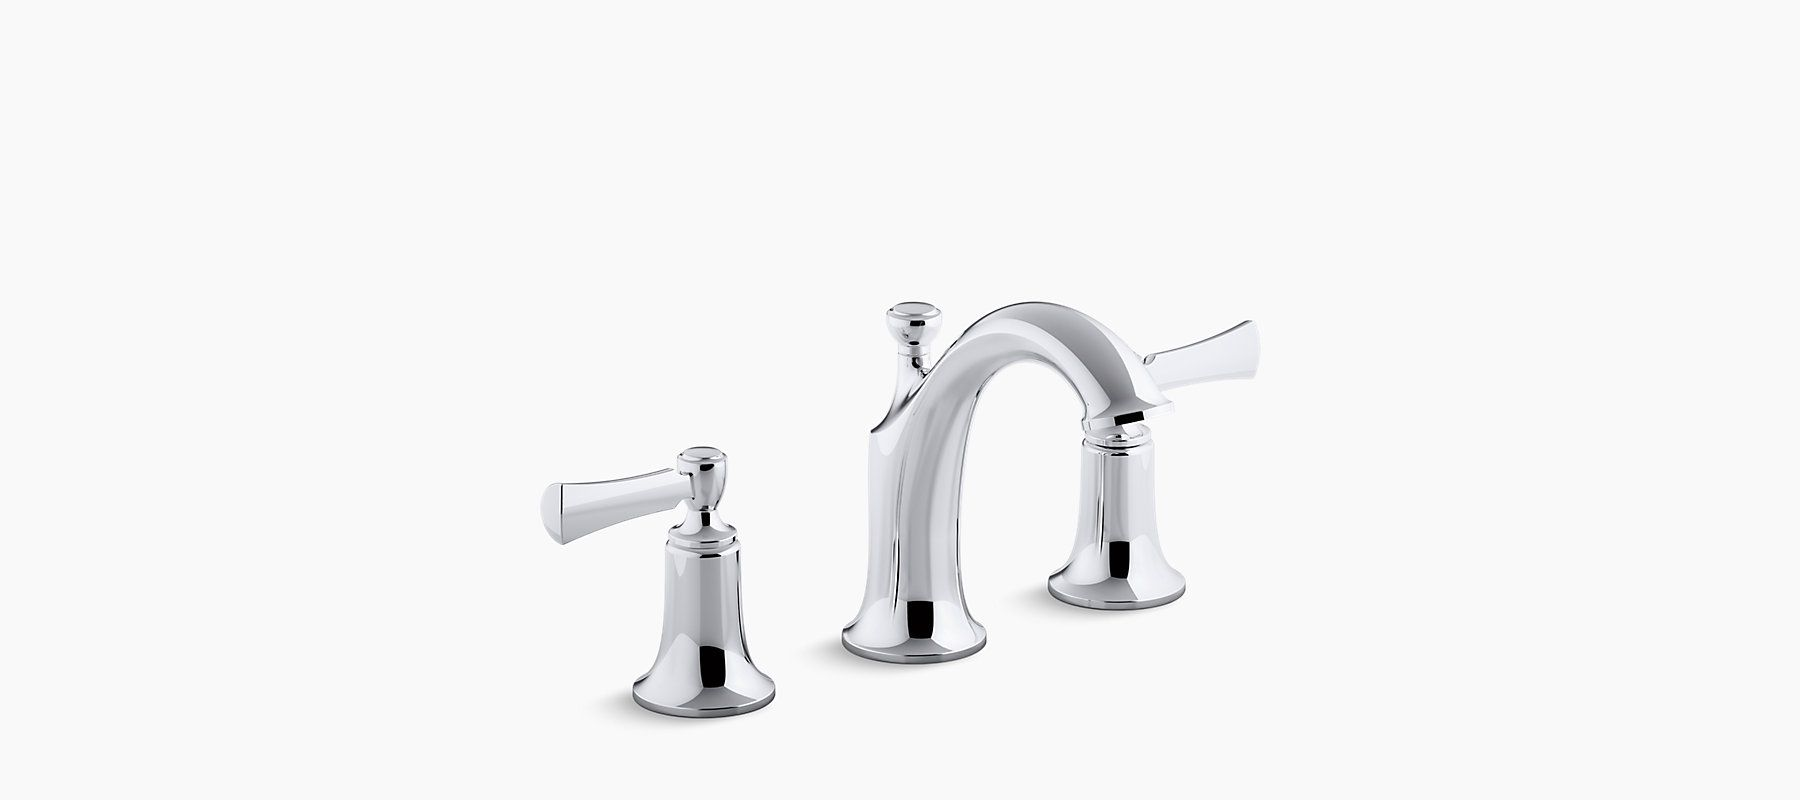 The K R72781 4D Sink Faucet Brings Traditional Artisan Style And Water  Savings To